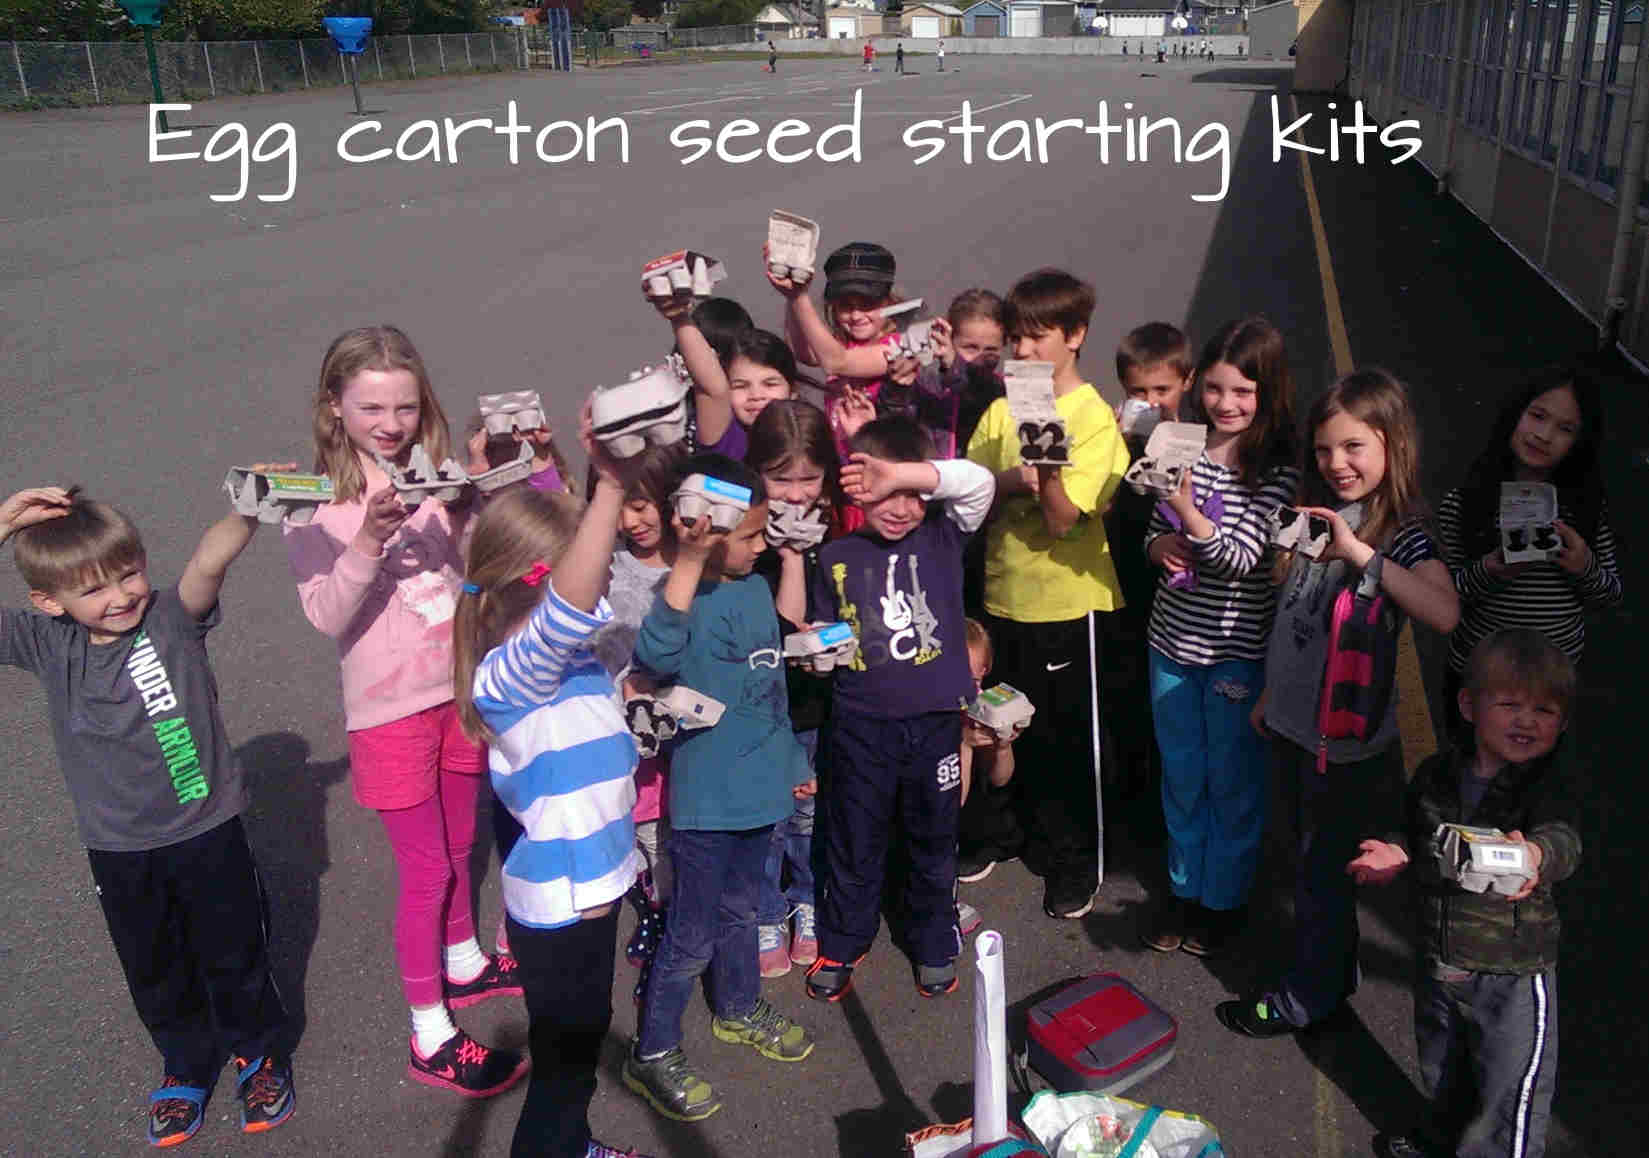 egg carton seed starting kits